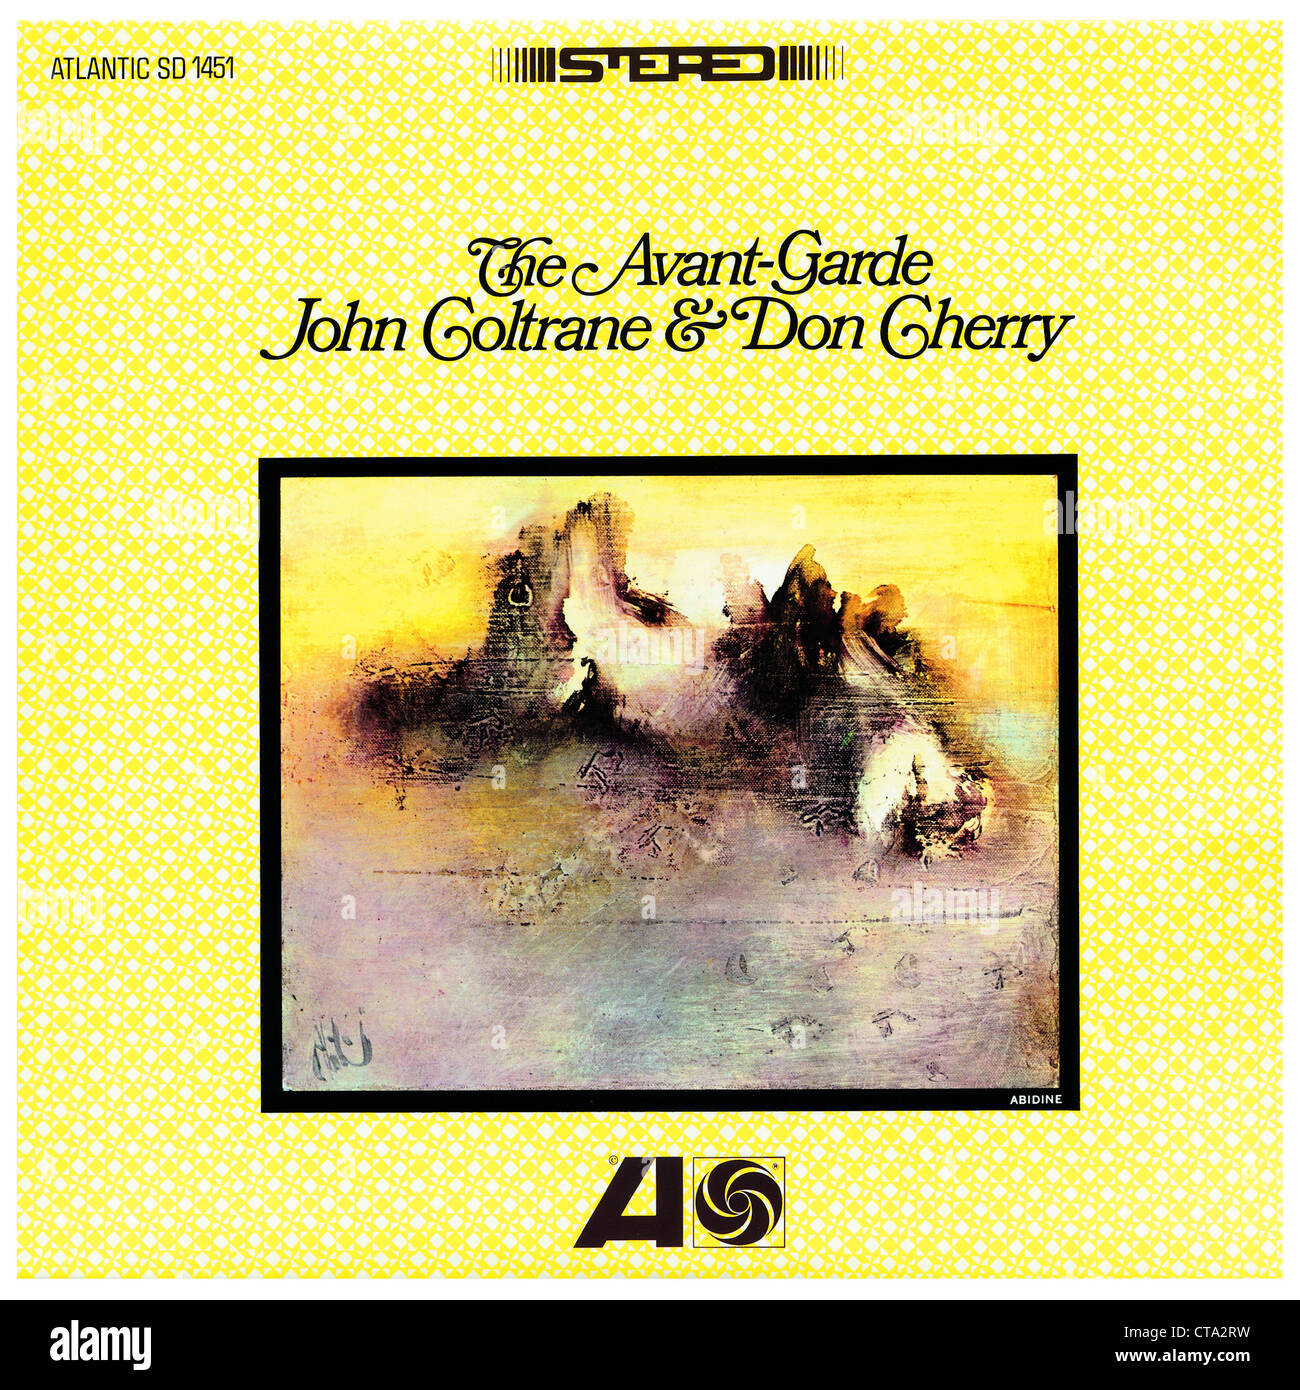 John Coltrane and Don Cherry LP cover Photo Courtesy Granamour Weems Collection  Editorial Use Only - Stock Image